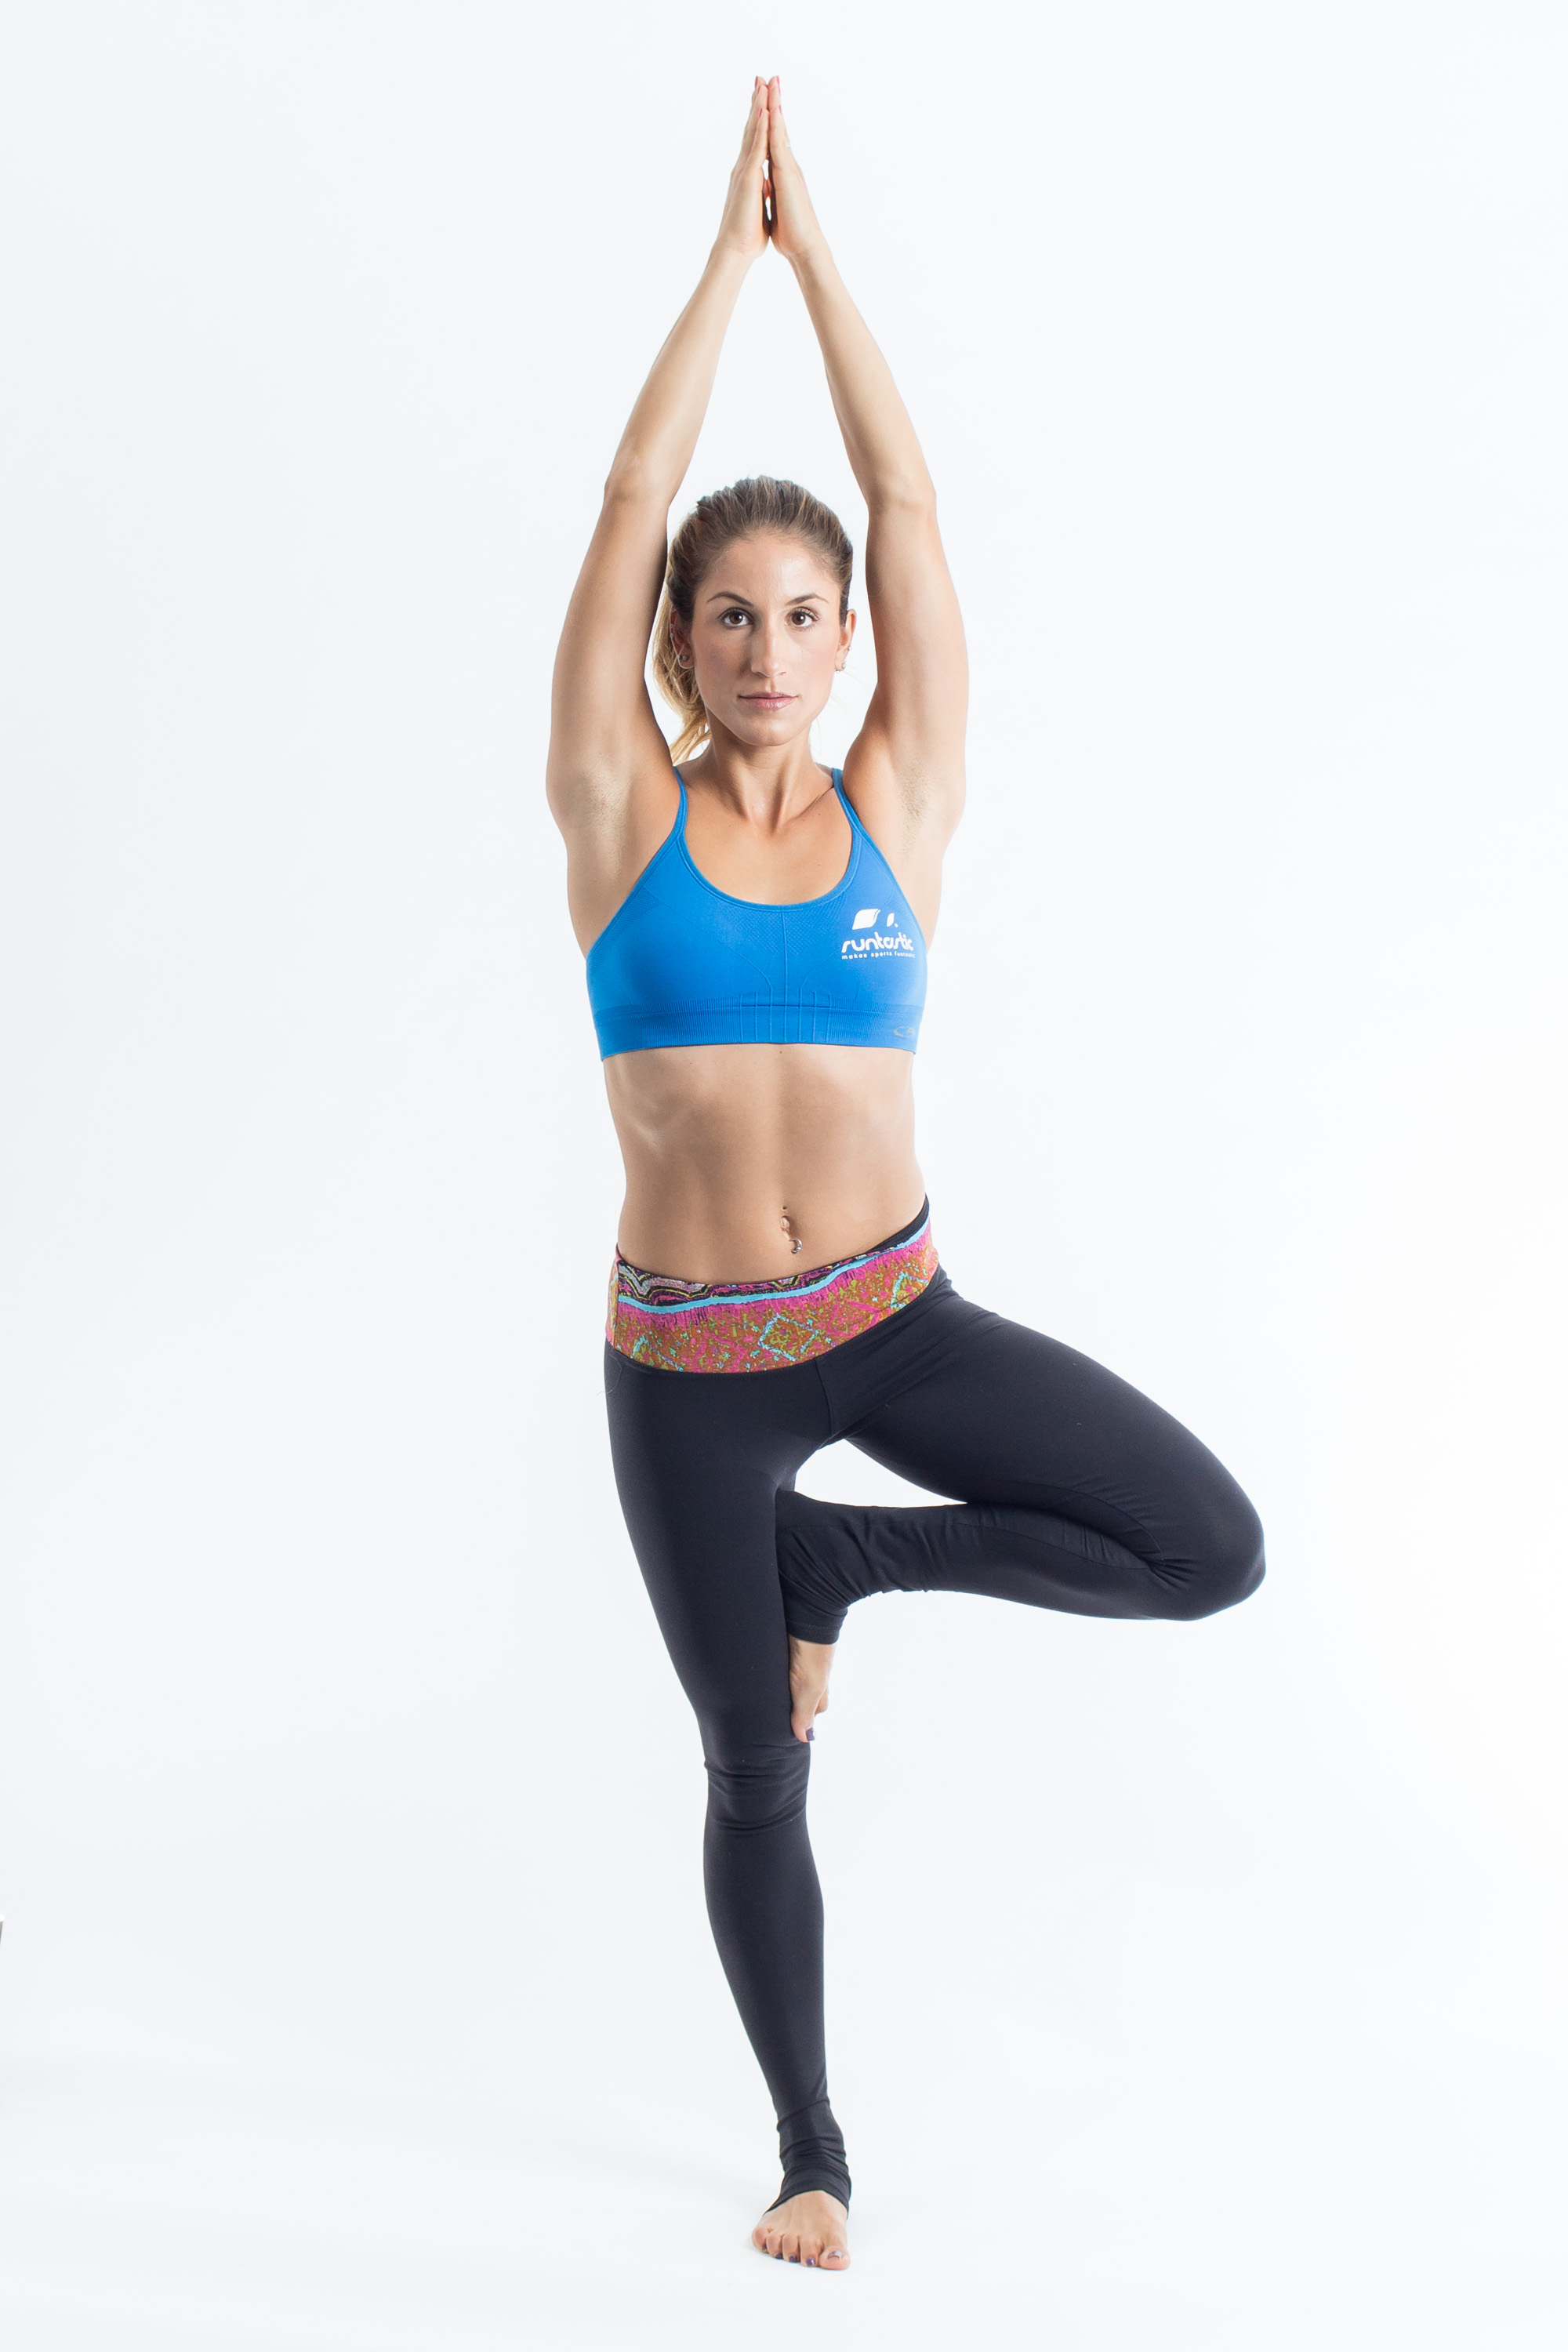 Yoga Poses for Runners - Tree